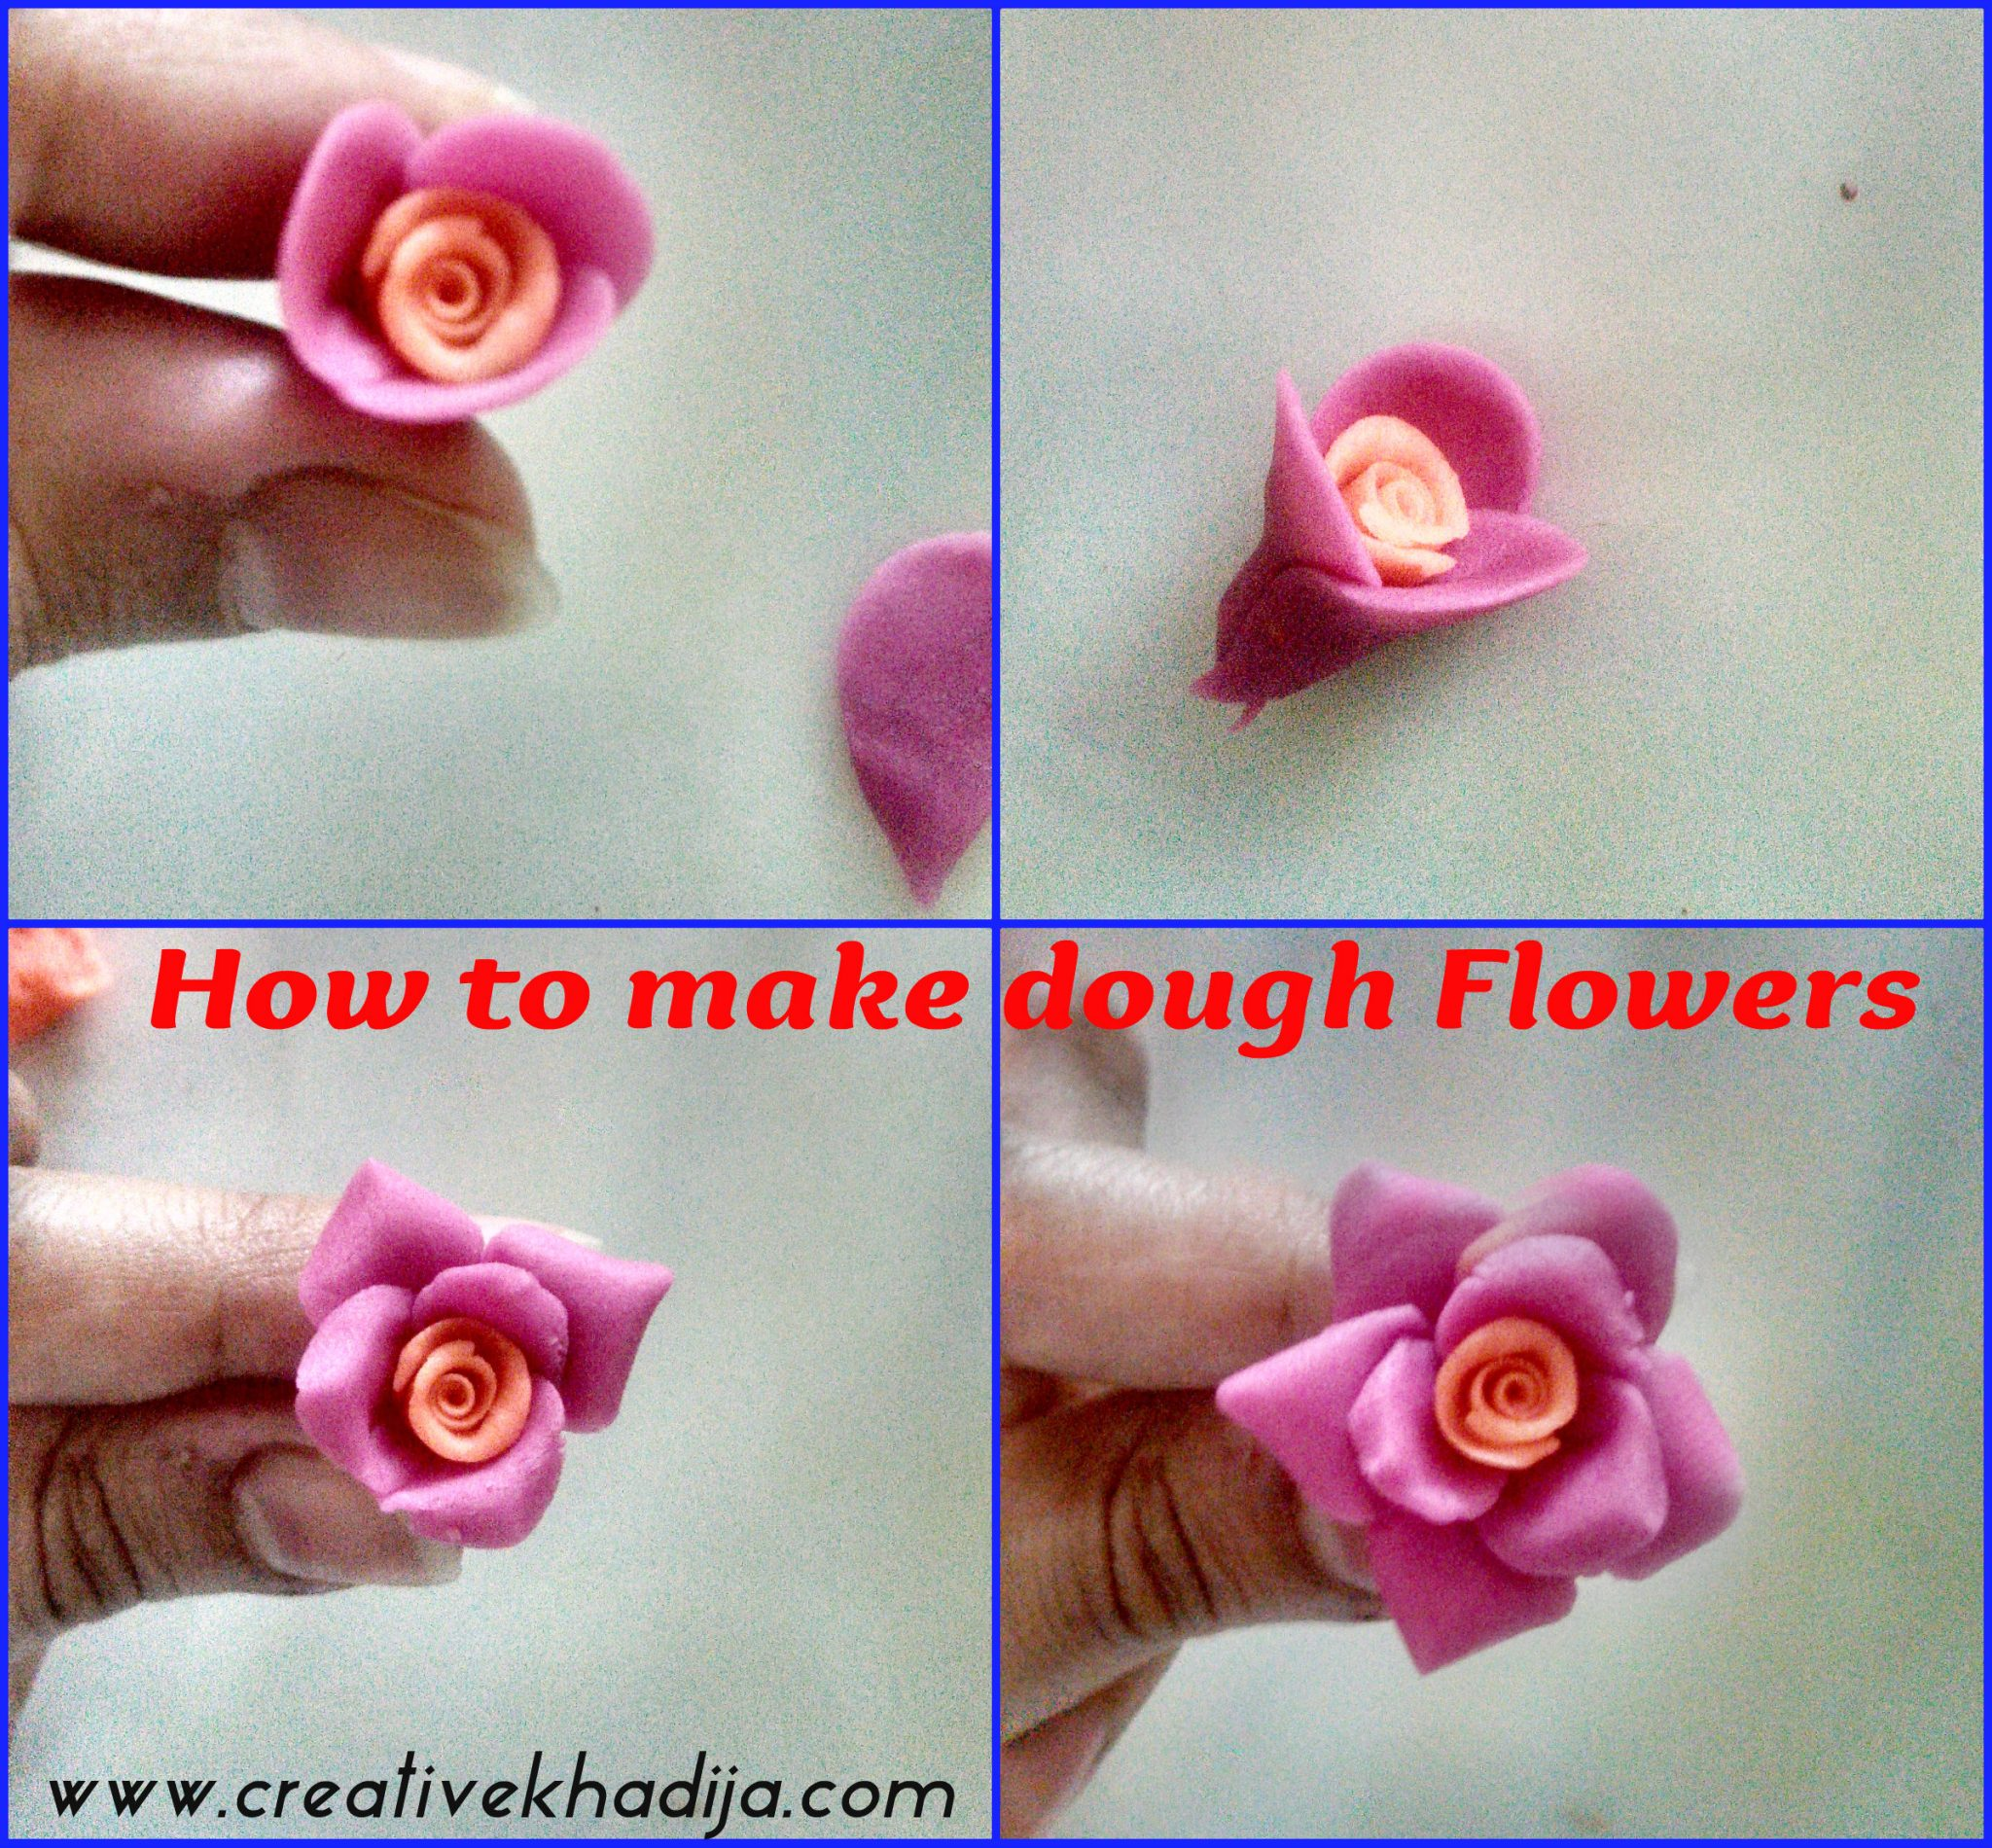 How To Make Dough Flowers Part-1